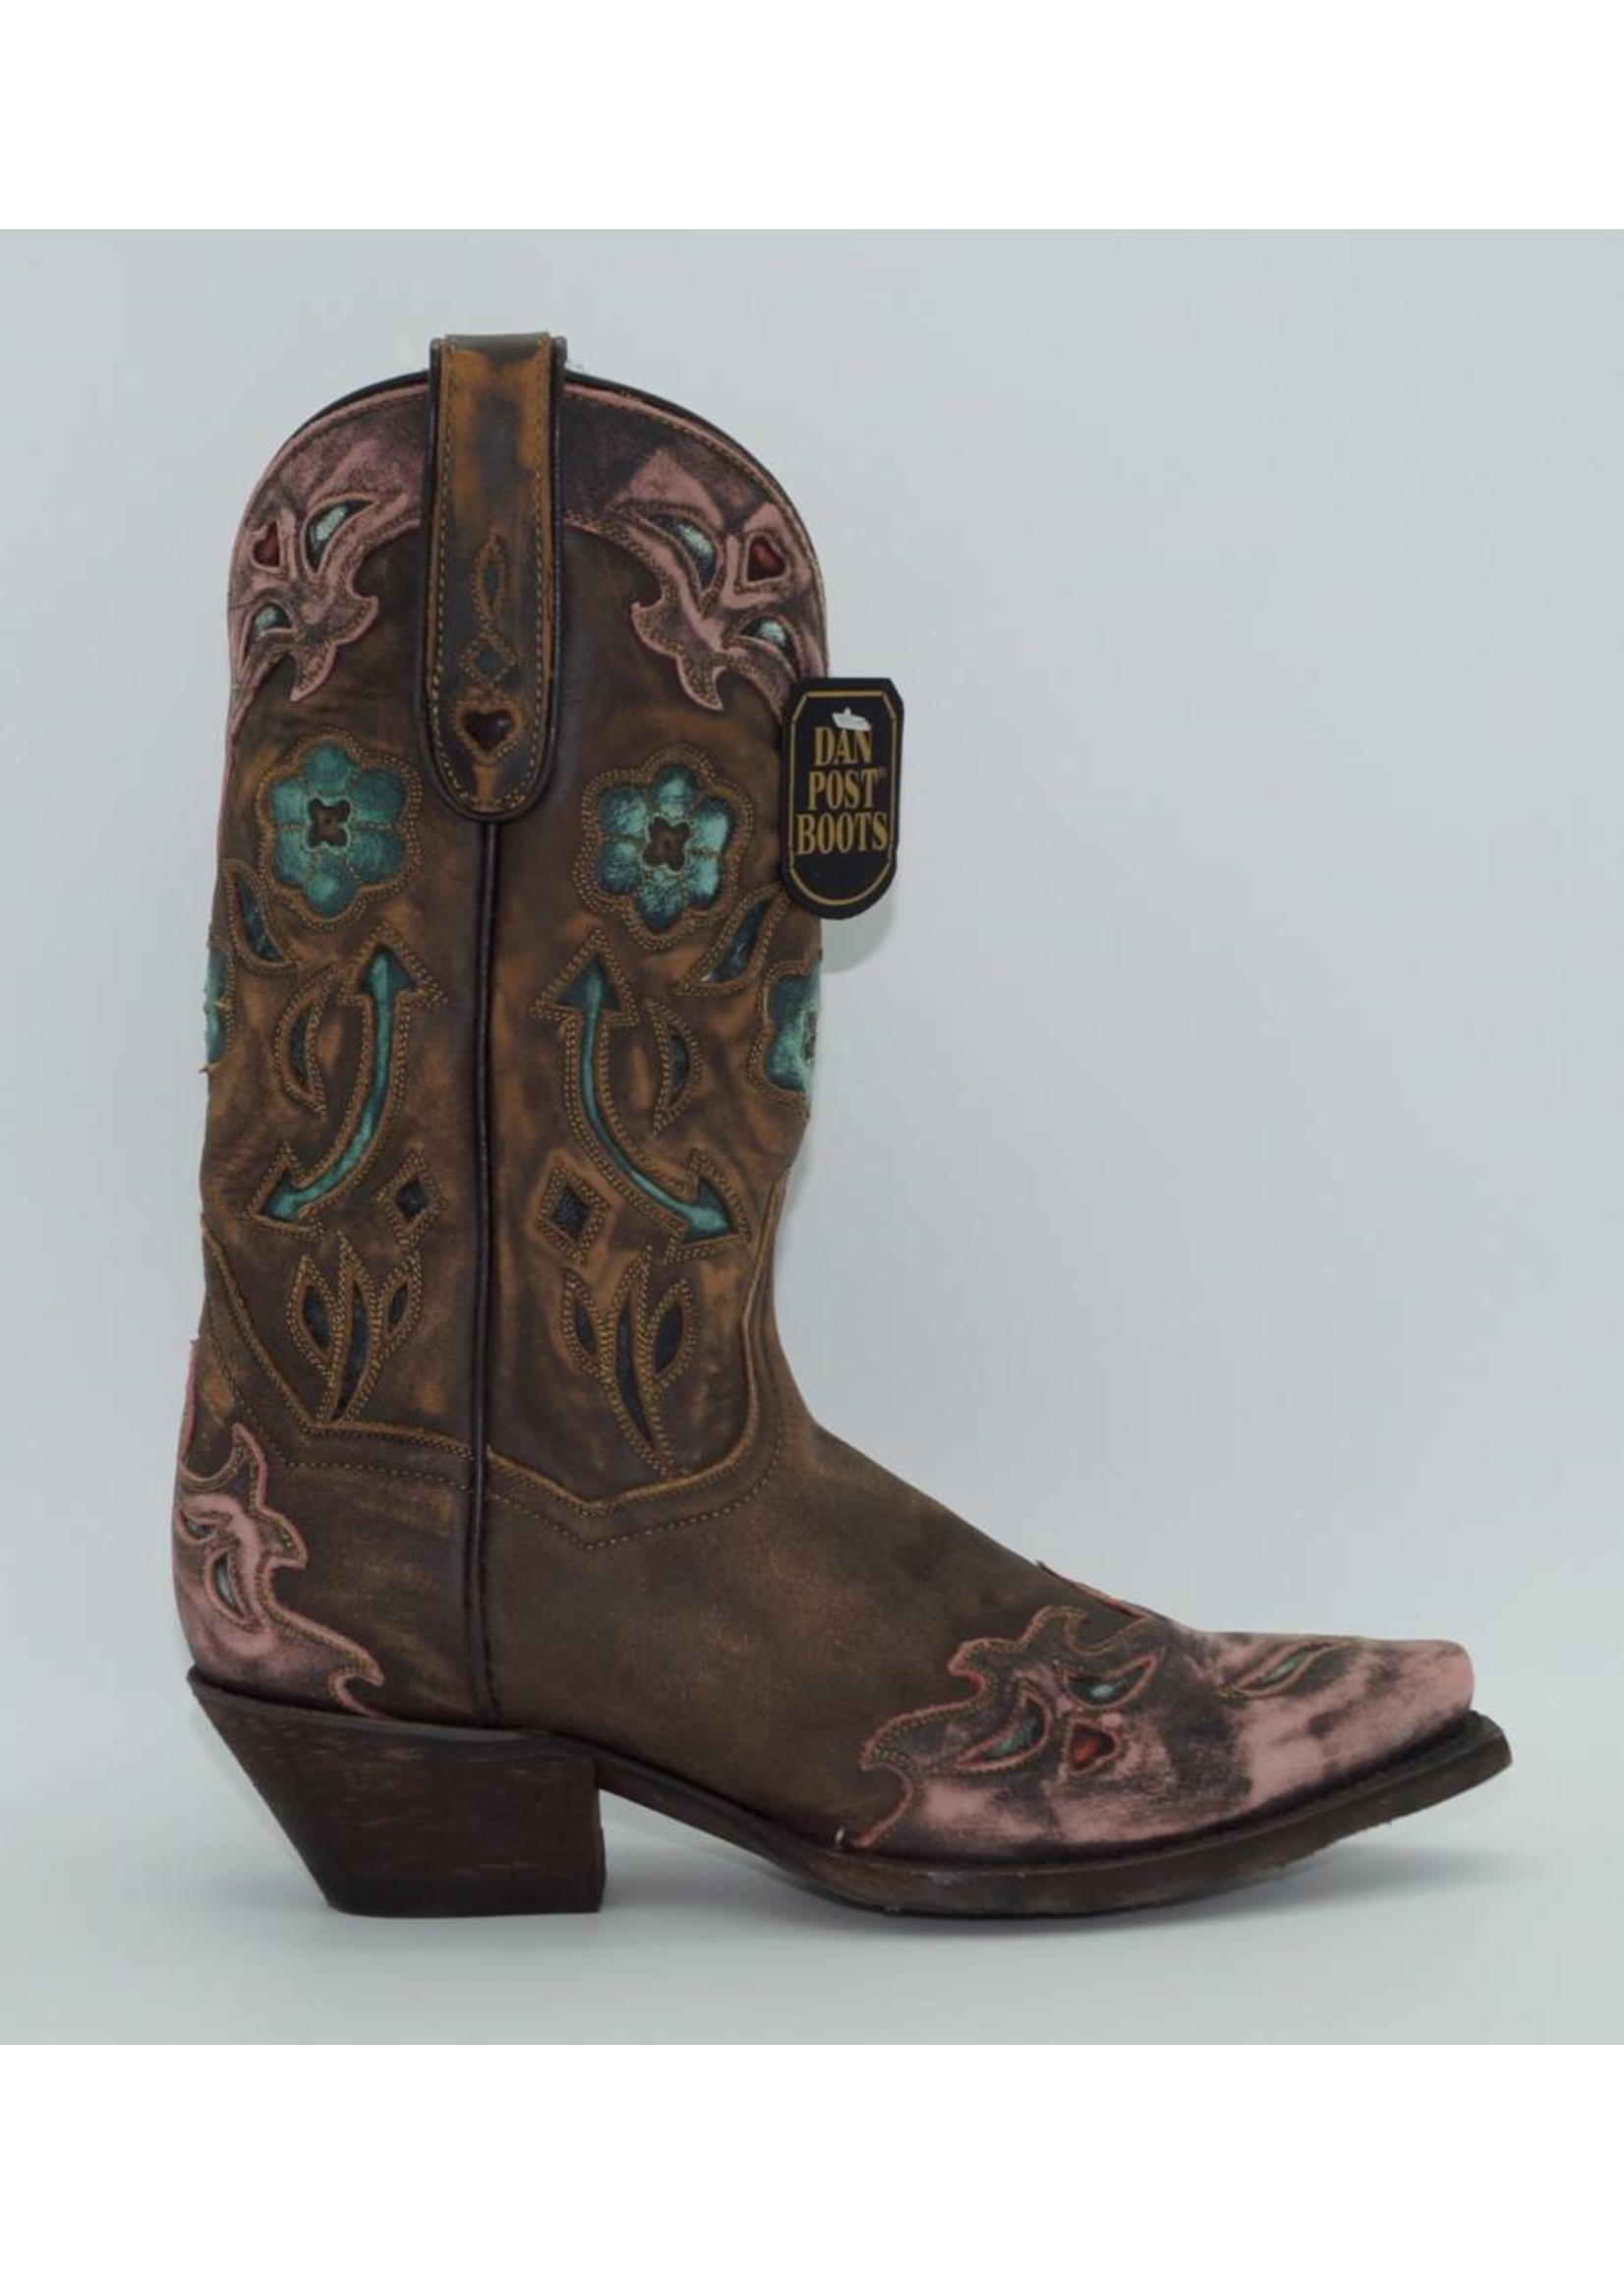 Dan Post Women's Sanded blue Arrow Western Boots DP3459